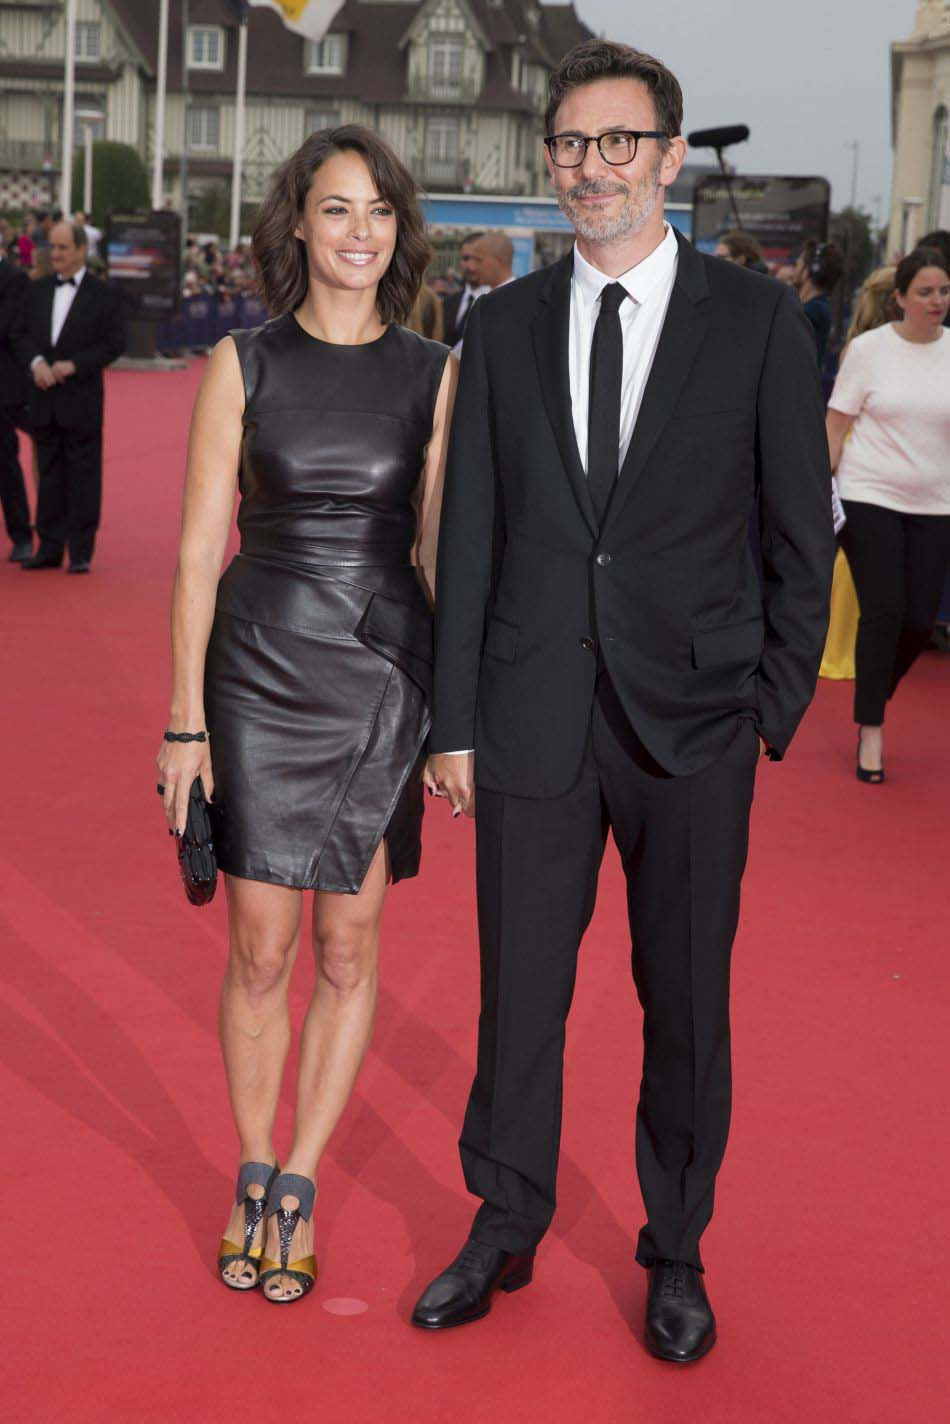 Berenice Bejo attended the opening ceremony of the 40th Annual Deauville American Film Festival